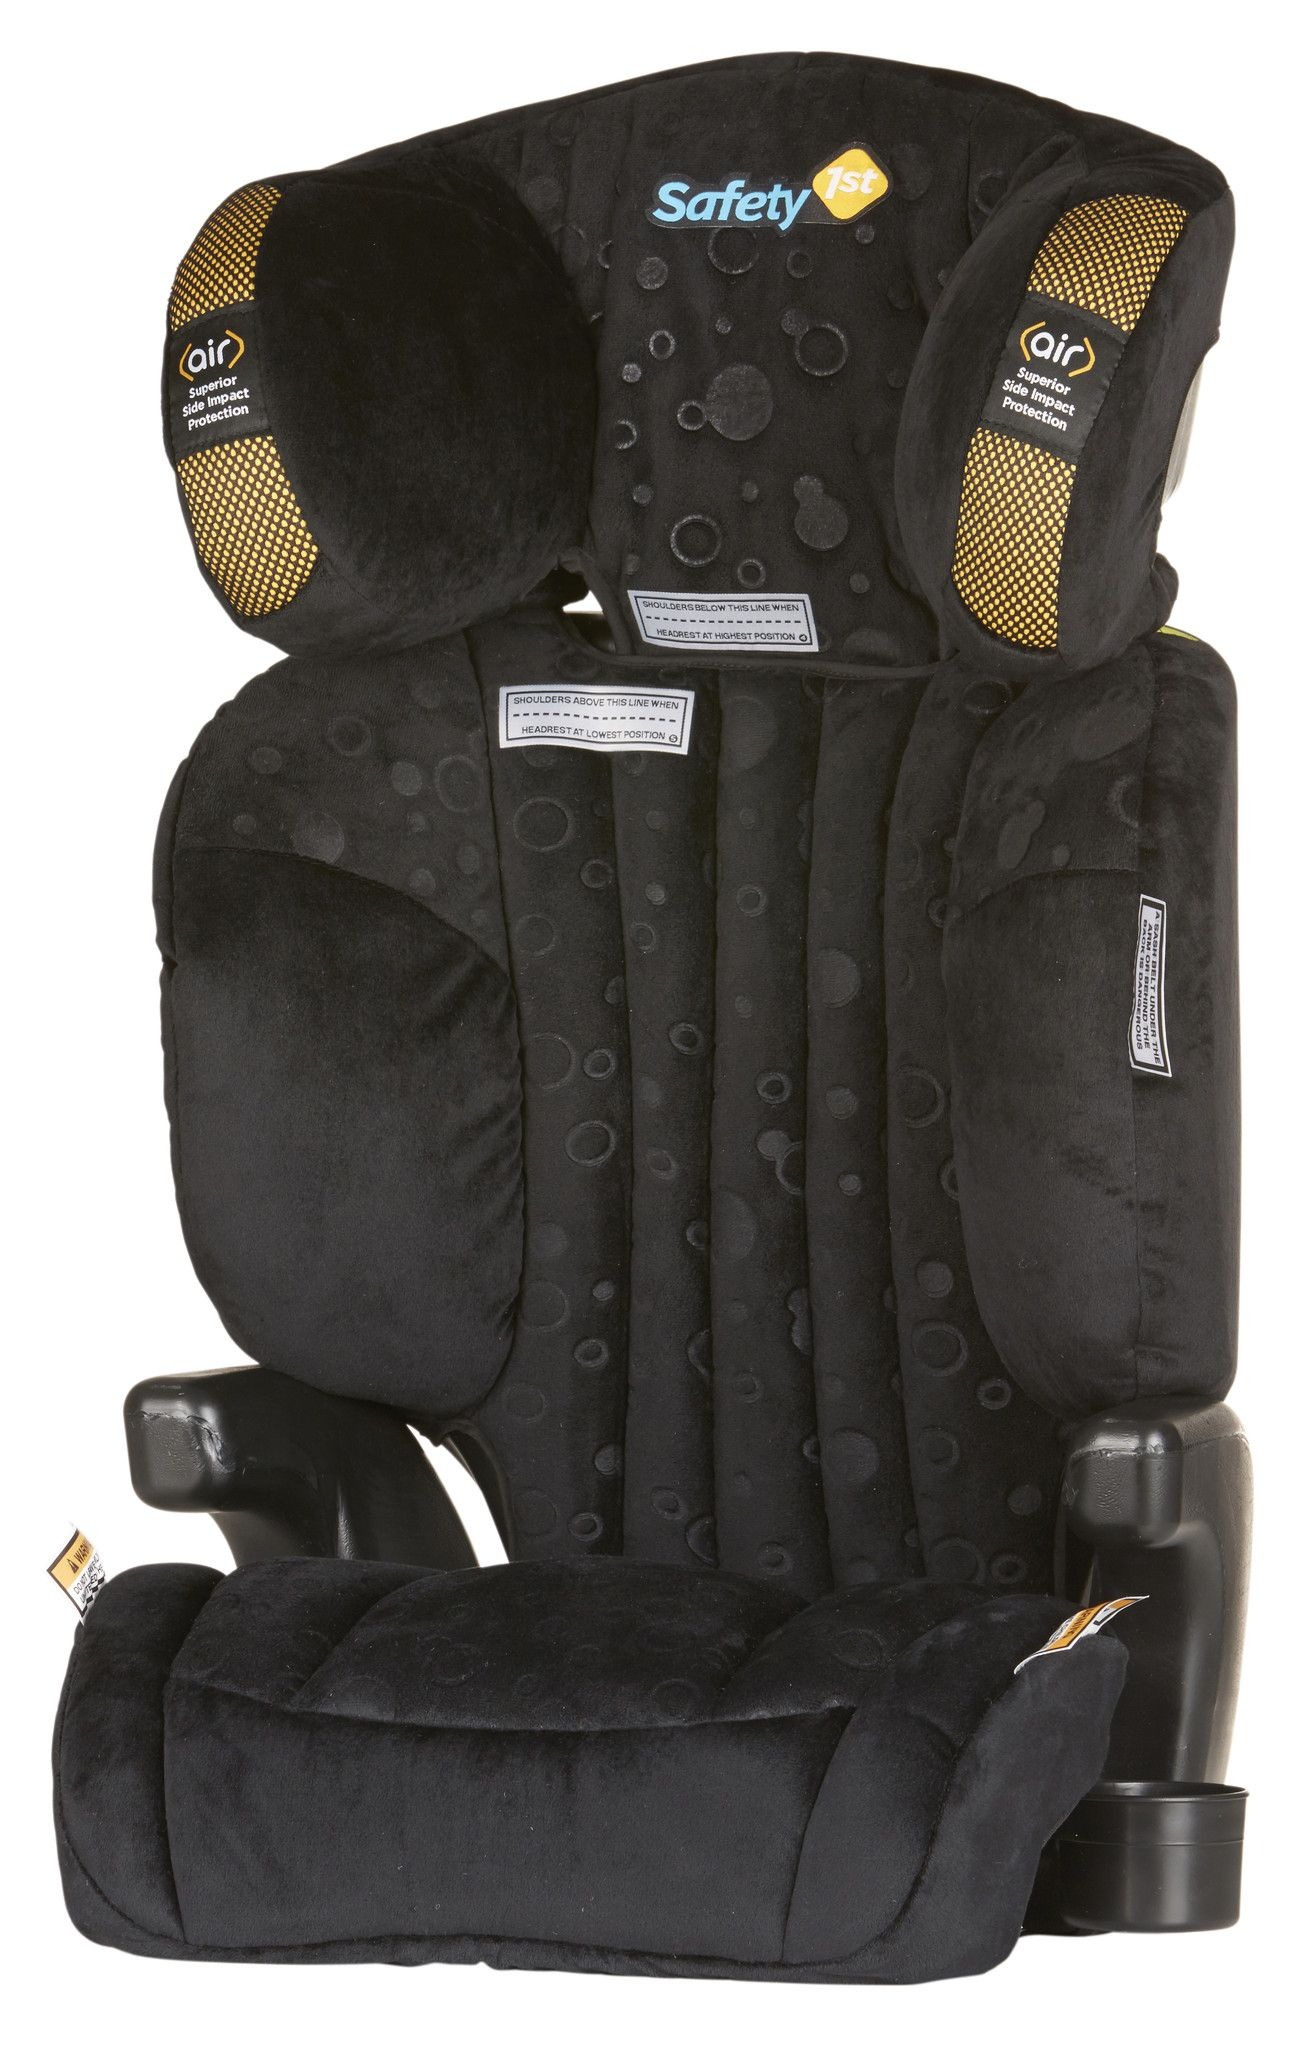 Safety 1st Custodian II Booster (suitable 4 - 8 years) from Beba Baby Hire